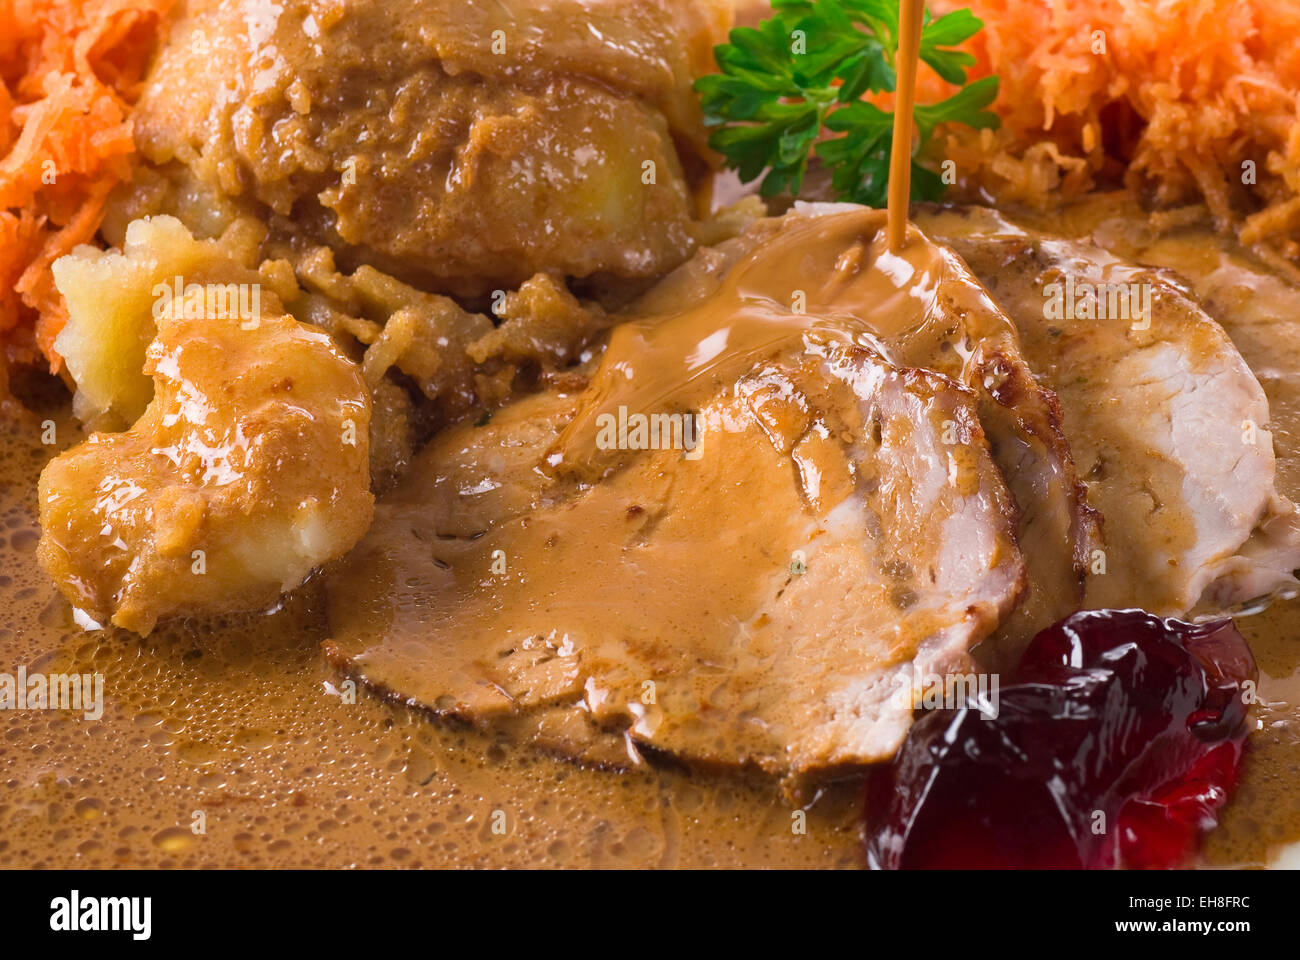 Sliced baked pork steak with cream sauce and cooked potato. - Stock Image